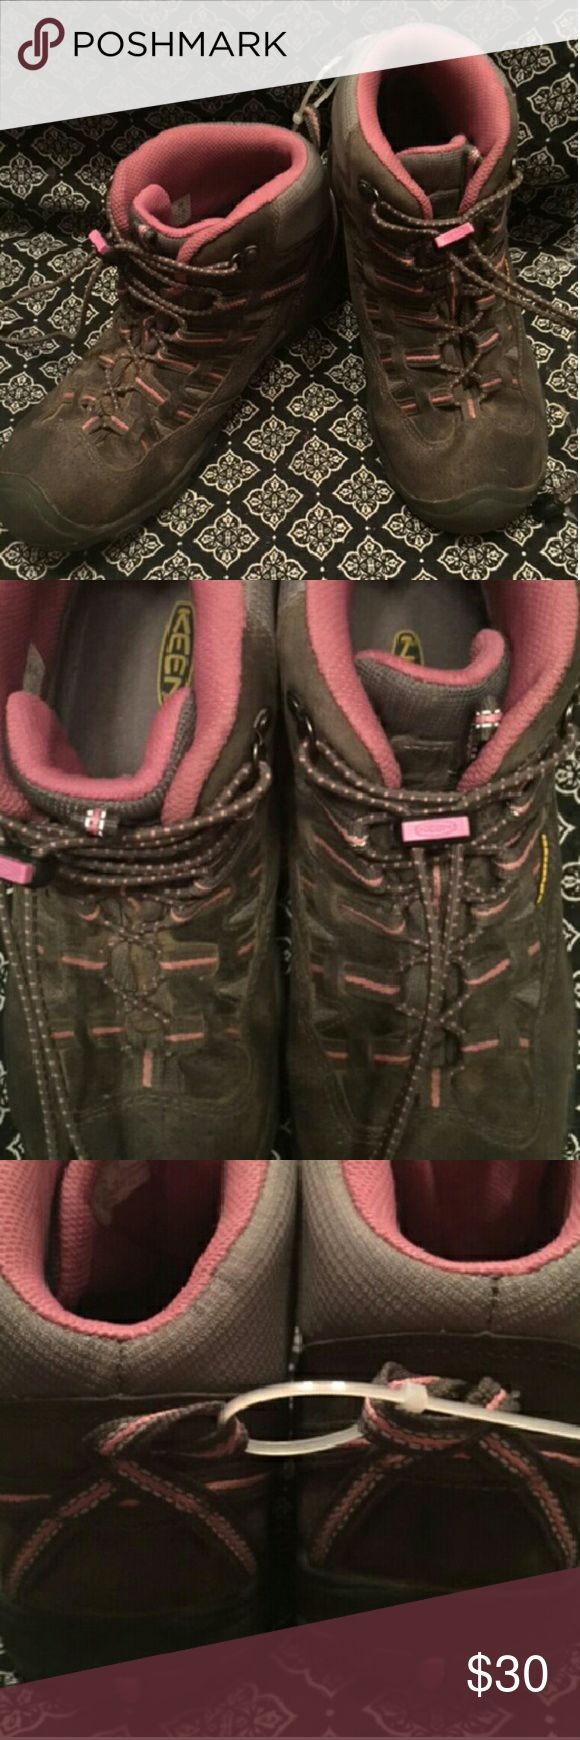 Keen waterproof hiking boots size 6 Very good condition waterproof hiking boots. Extra support adjustable around ankle pulls. Pink and grey modern look. Great boot for rough girl play Keen Shoes Lace Up Boots